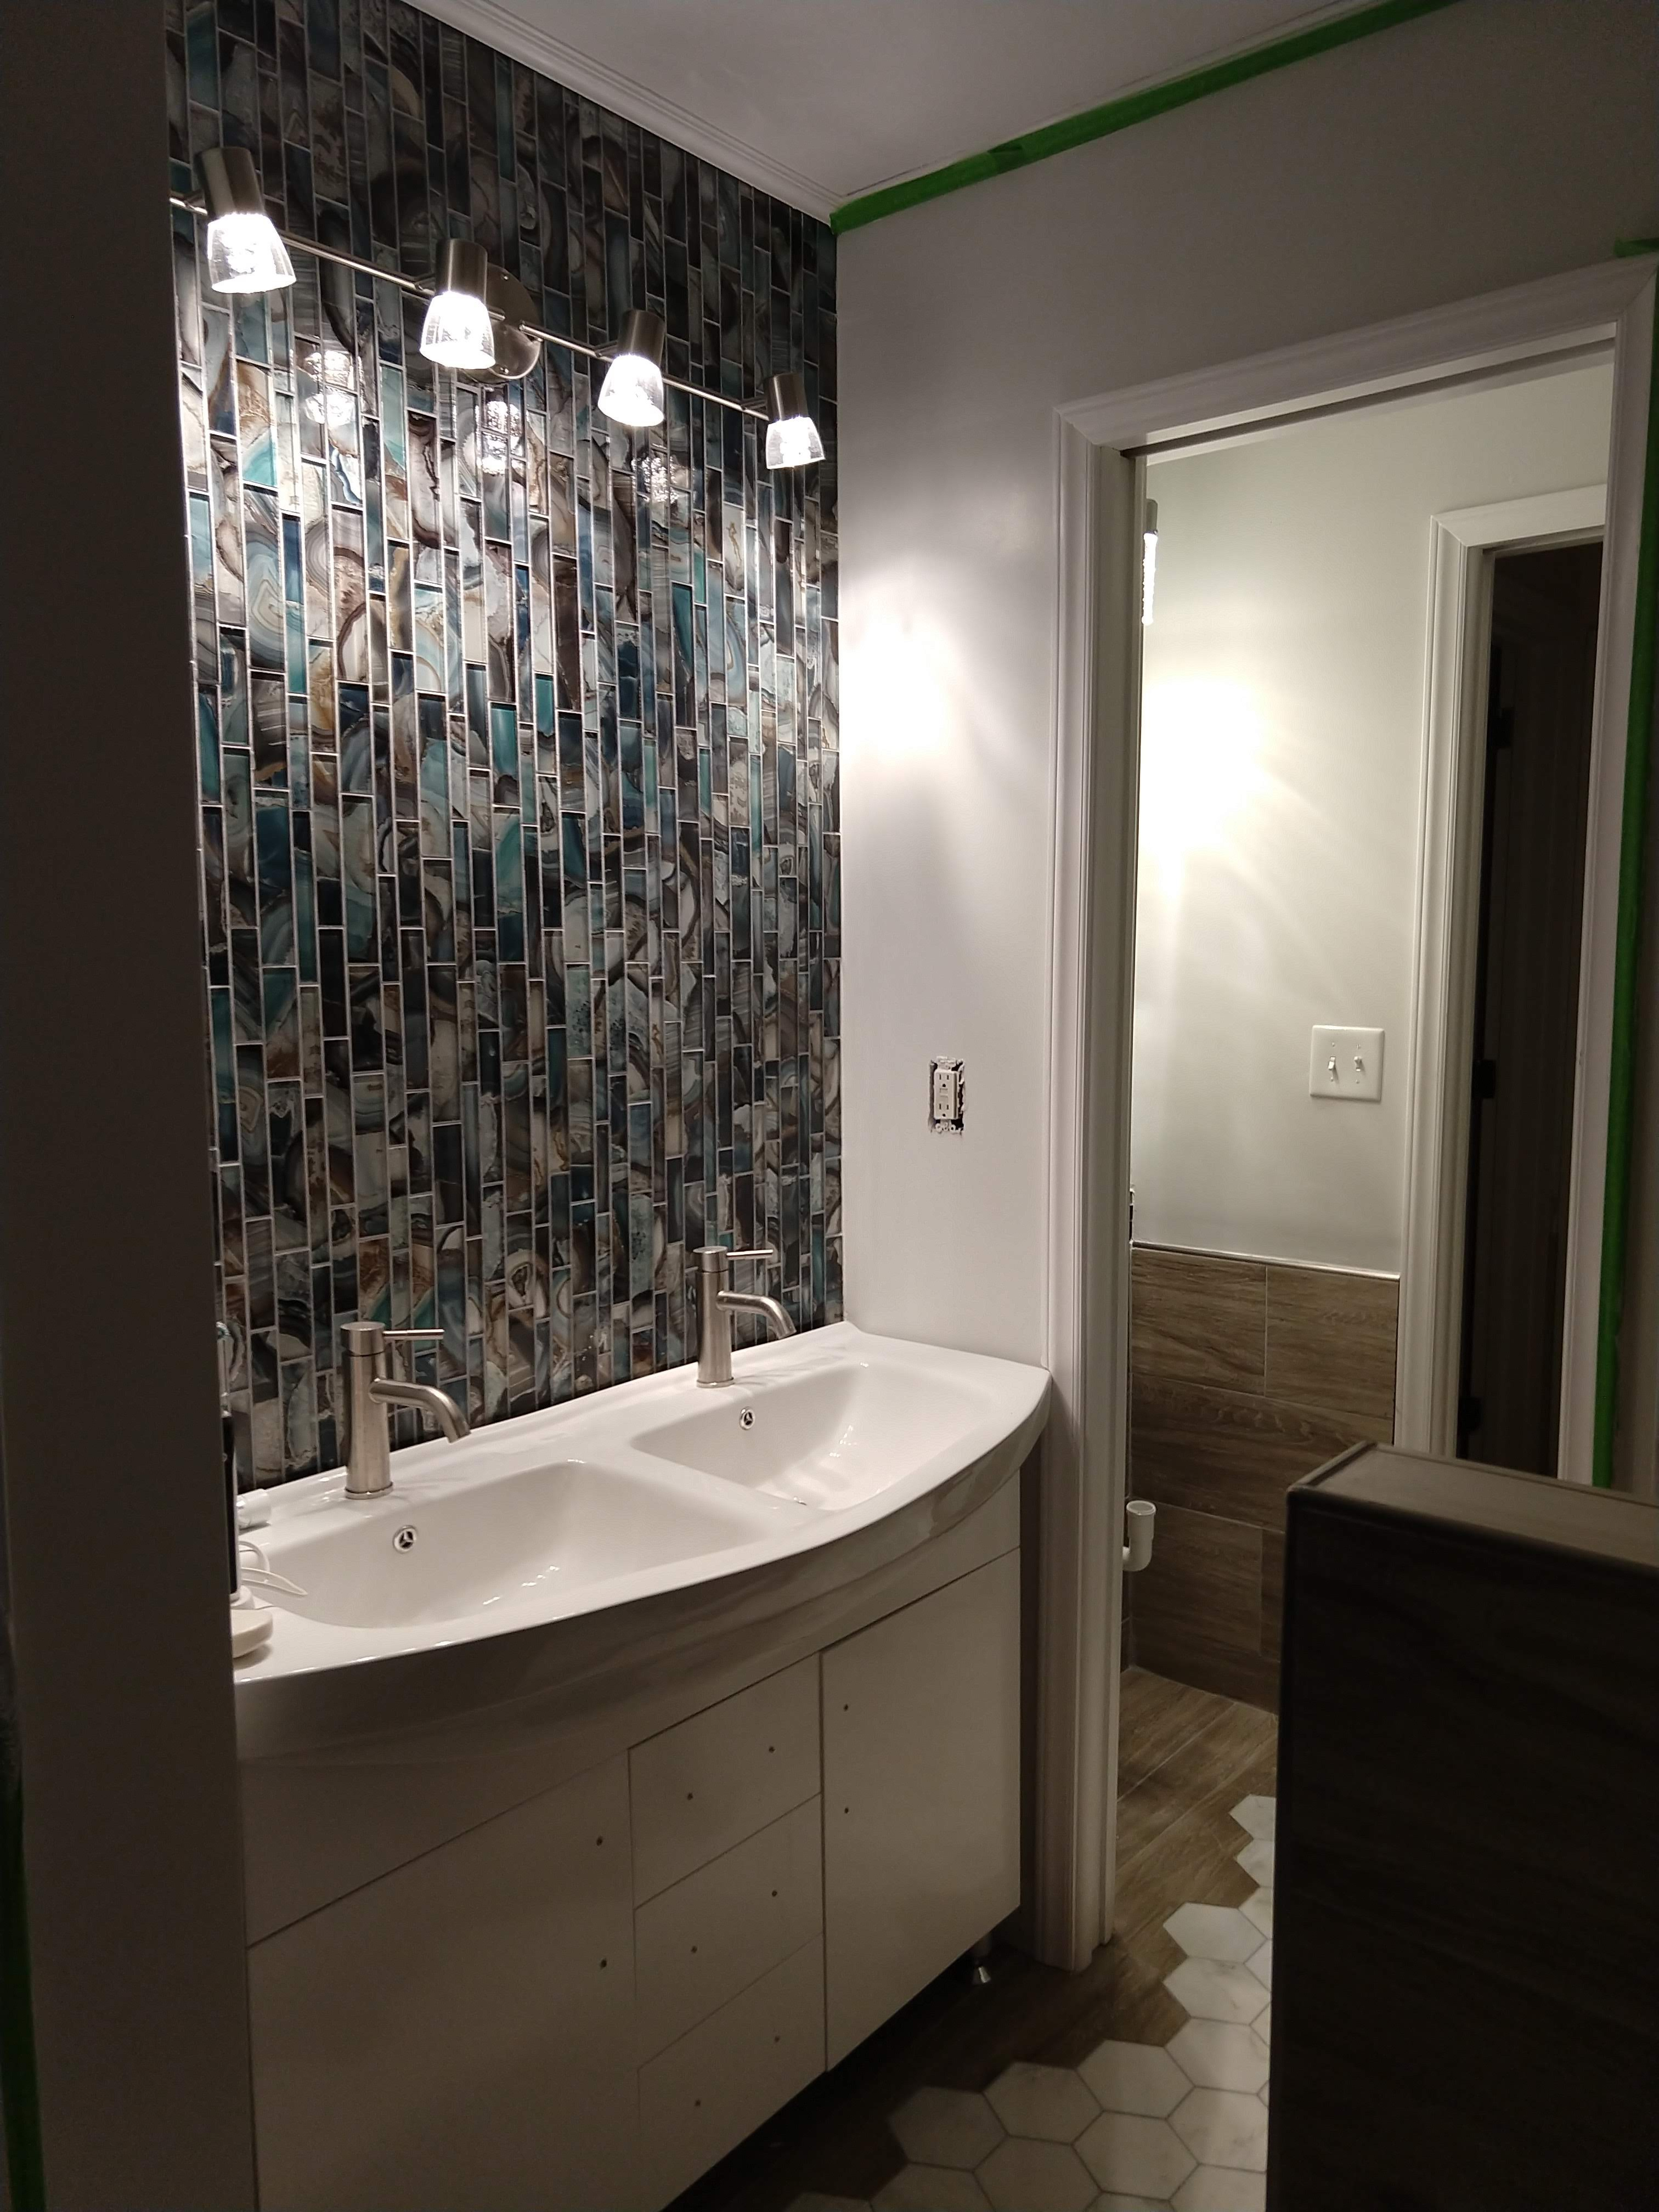 Look at possible different designs with glass mosaic tiles